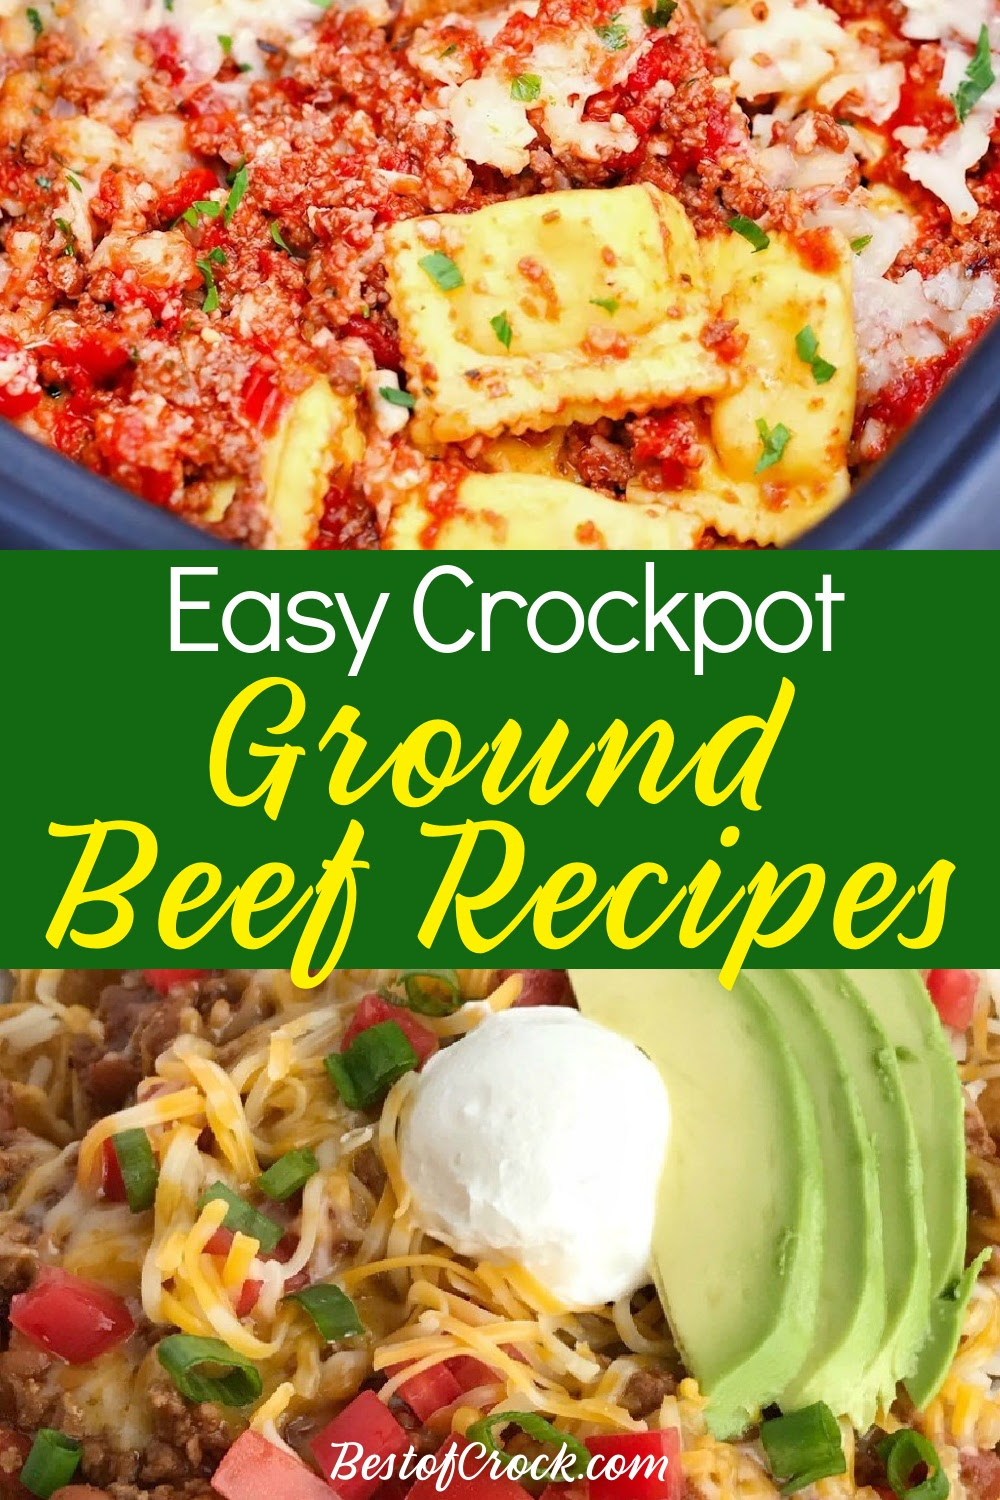 Use crockpot recipes with ground beef to make life easier all week or even month long by setting it and forgetting it. Ground Beef Crockpot Recipes | Crockpot Ground Beef Recipes | Crockpot Beef Recipes | Ground Beef Dinner Recipes | Slow Cooker Dinner Recipes | Slow Cooker Ground Beef Recipes | Slow Cooker Ground Beef Tacos #crockpot #groundbeef via @bestofcrock